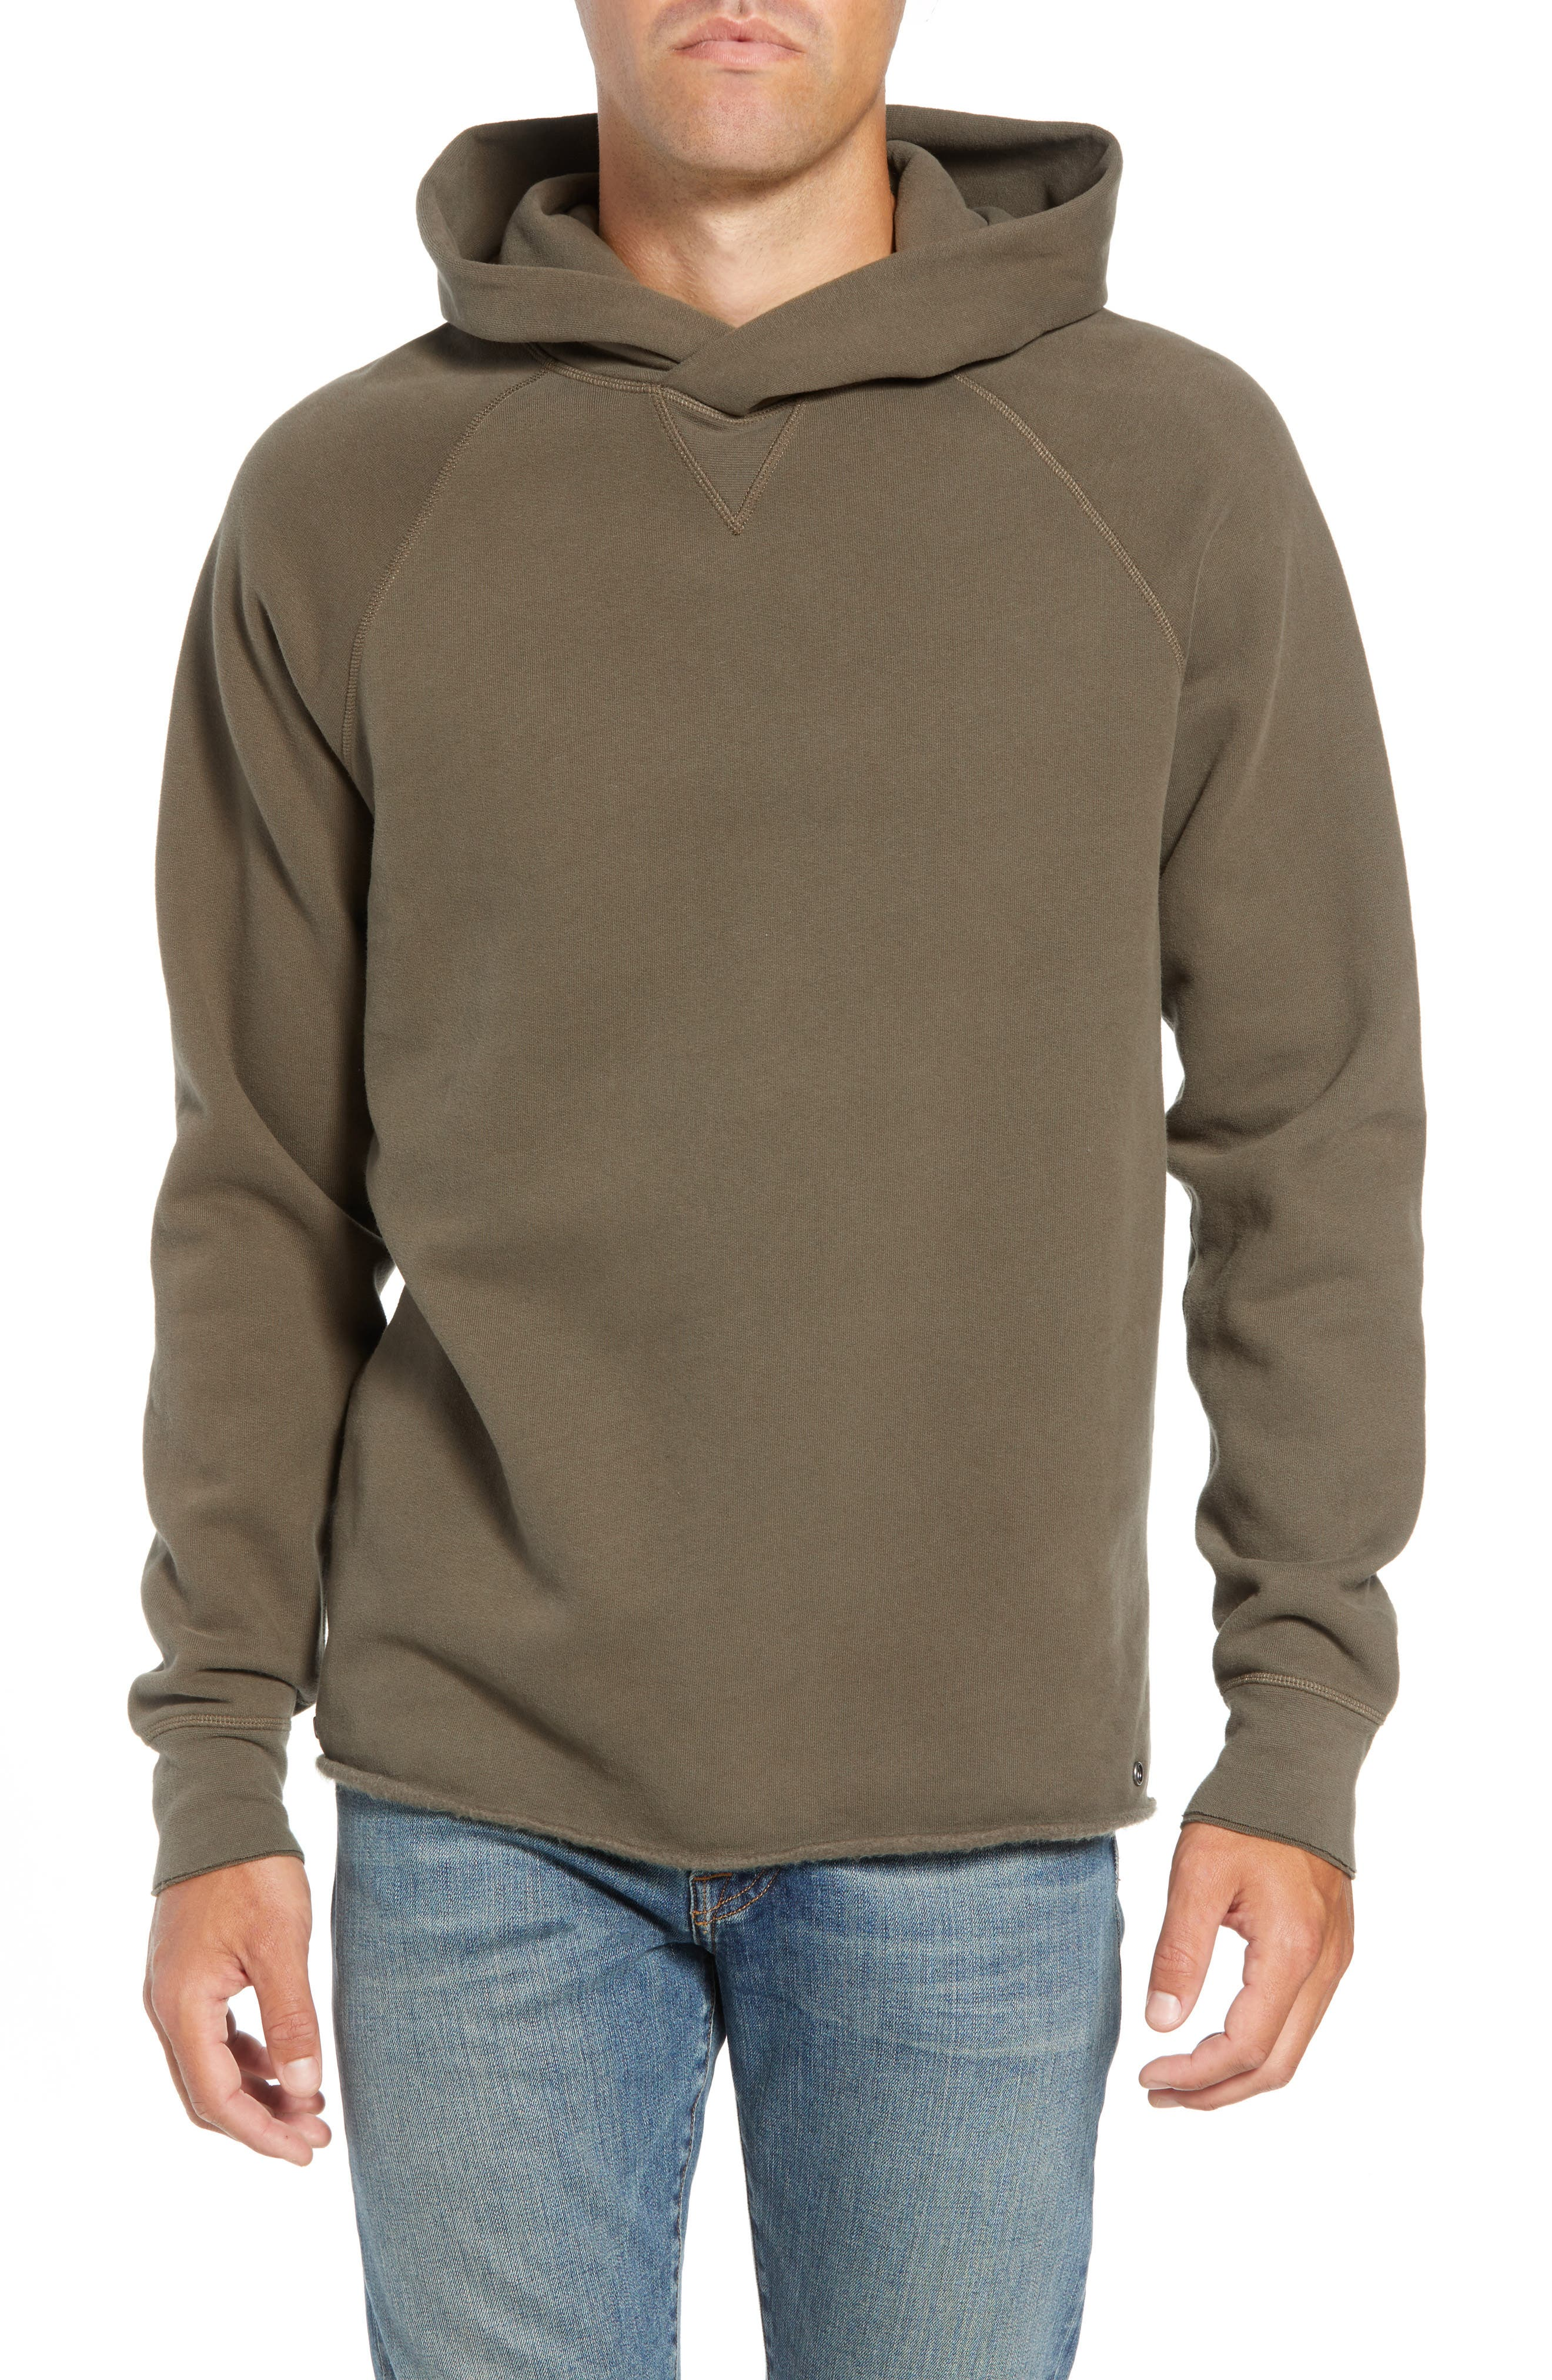 LEVI'S<SUP>®</SUP> MADE & CRAFTED<SUP>™</SUP>, Unhemmed Regular Fit Hoodie, Main thumbnail 1, color, 300